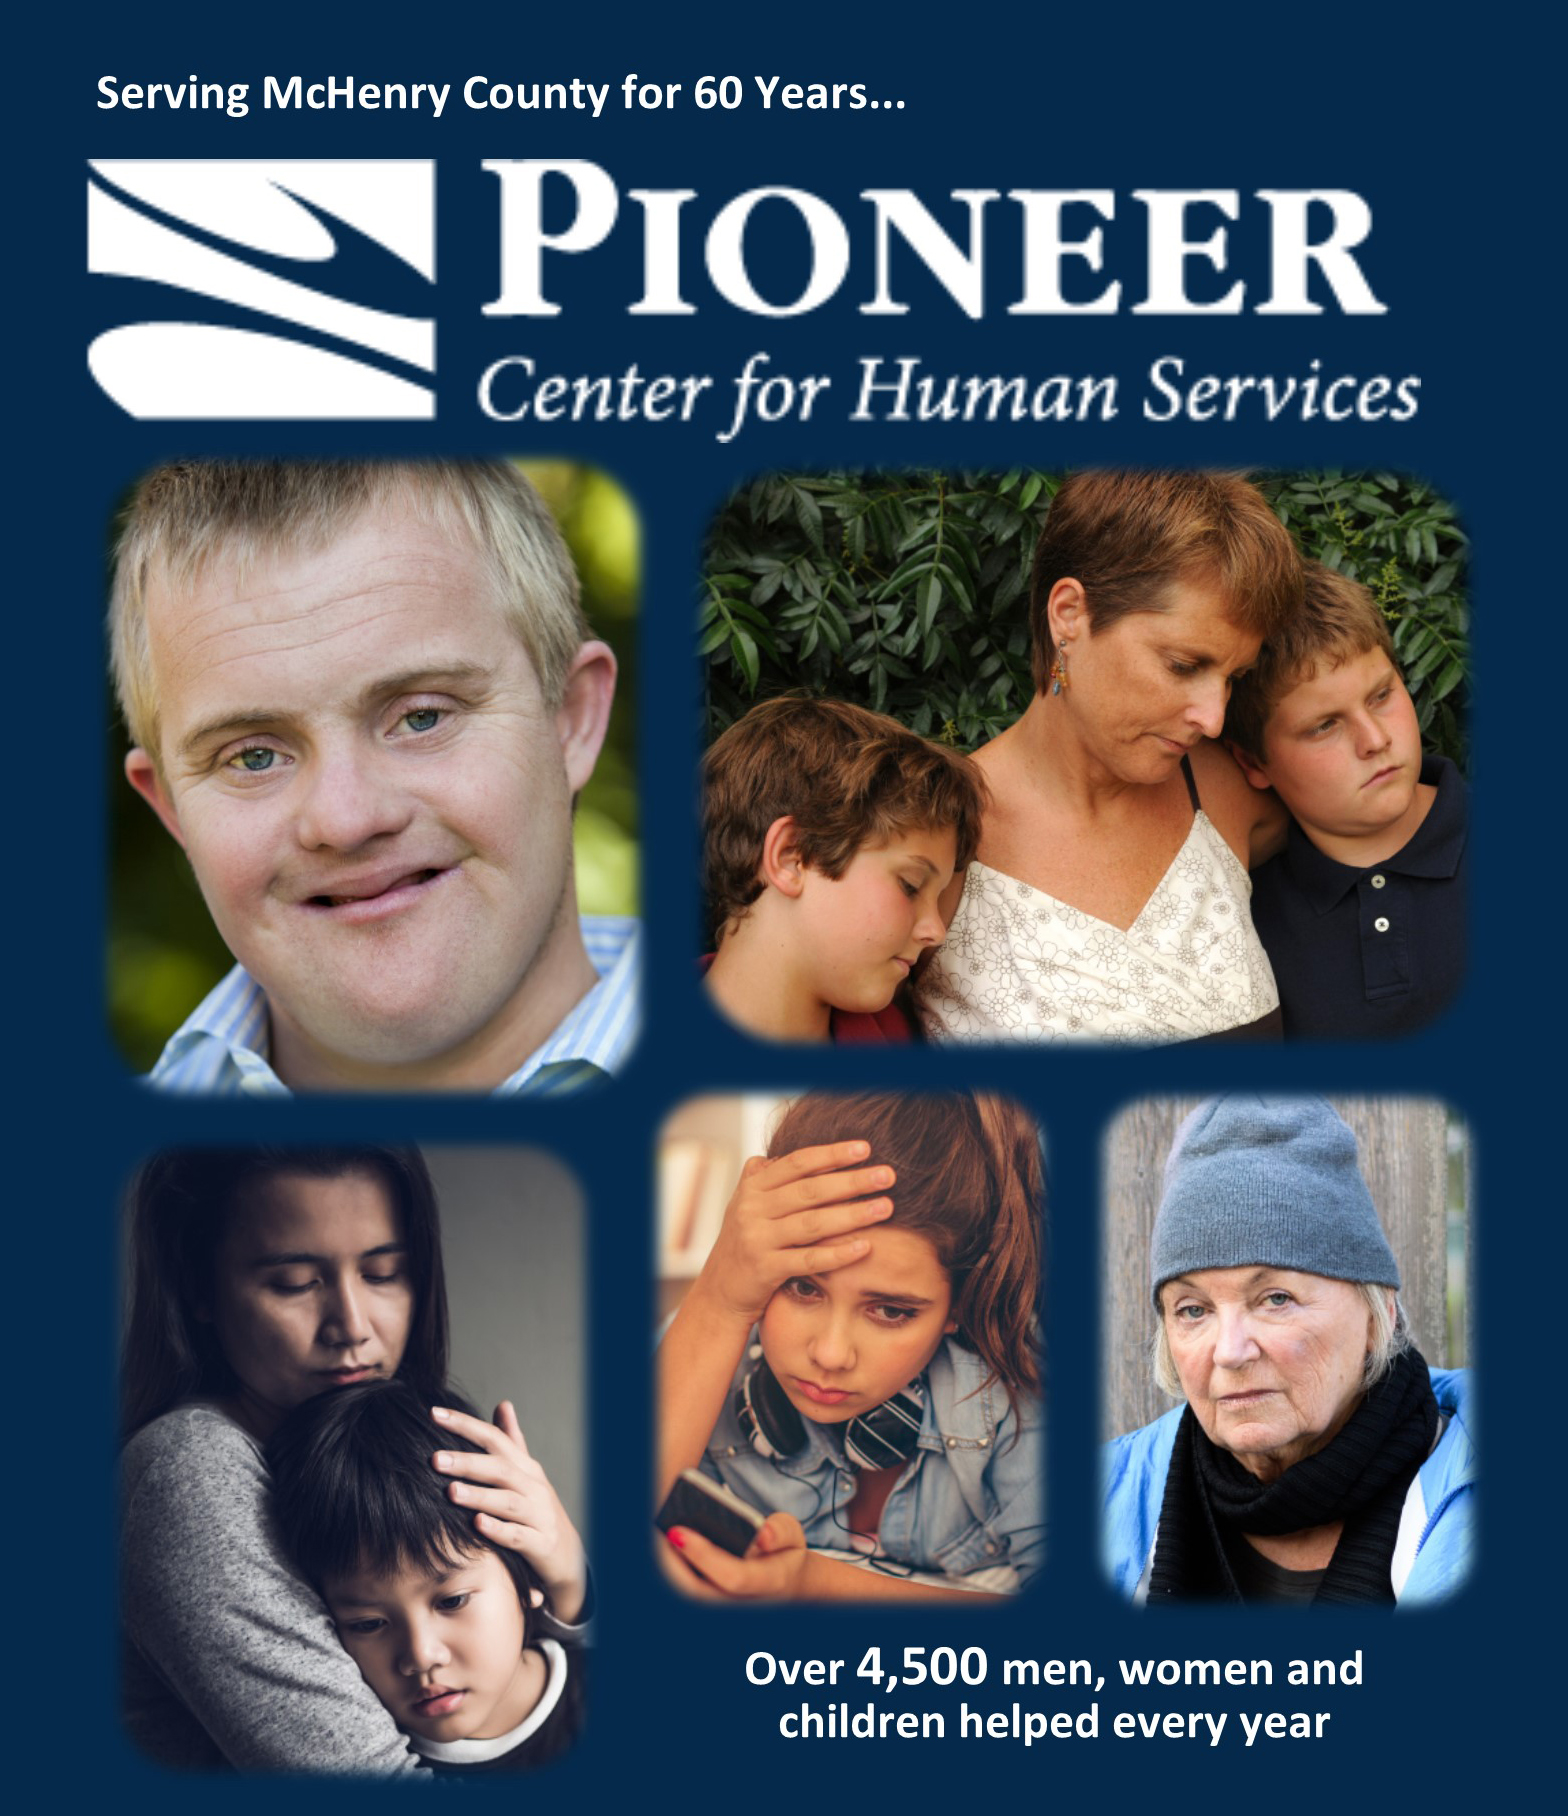 PIONEER CENTER FOR HUMAN SERVICES